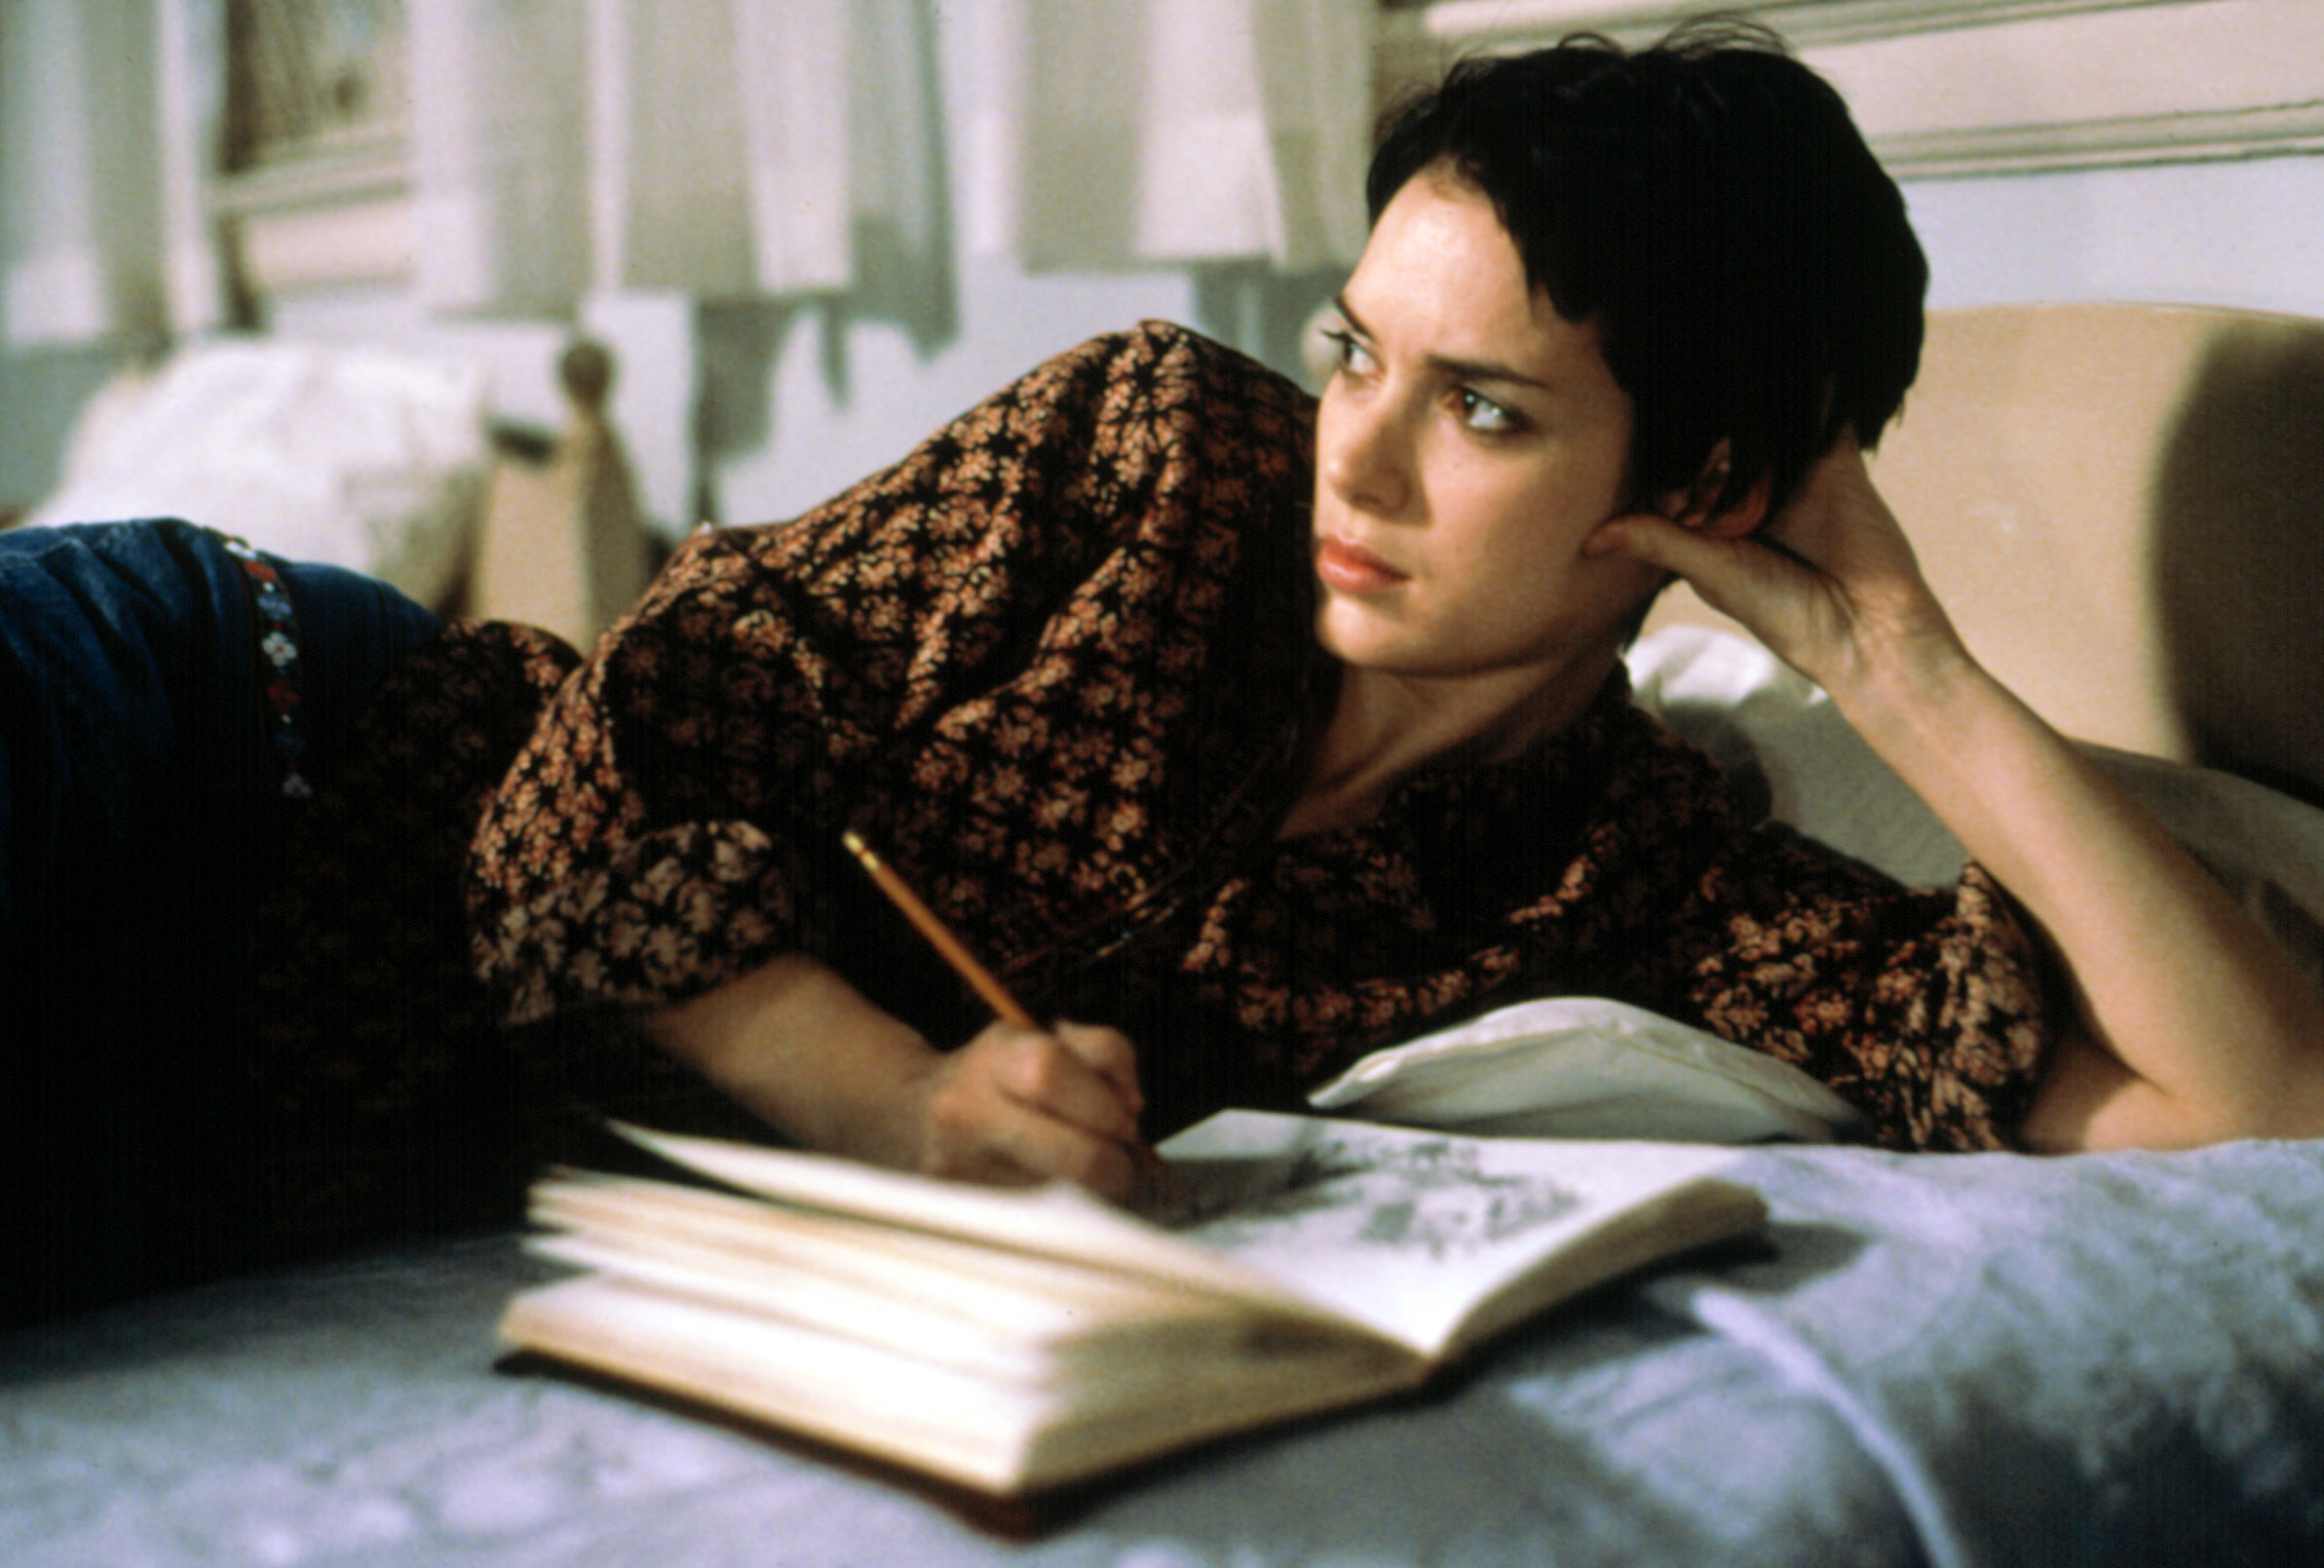 """Winona Ryder writing in a journal in """"Girl, Interrupted"""""""